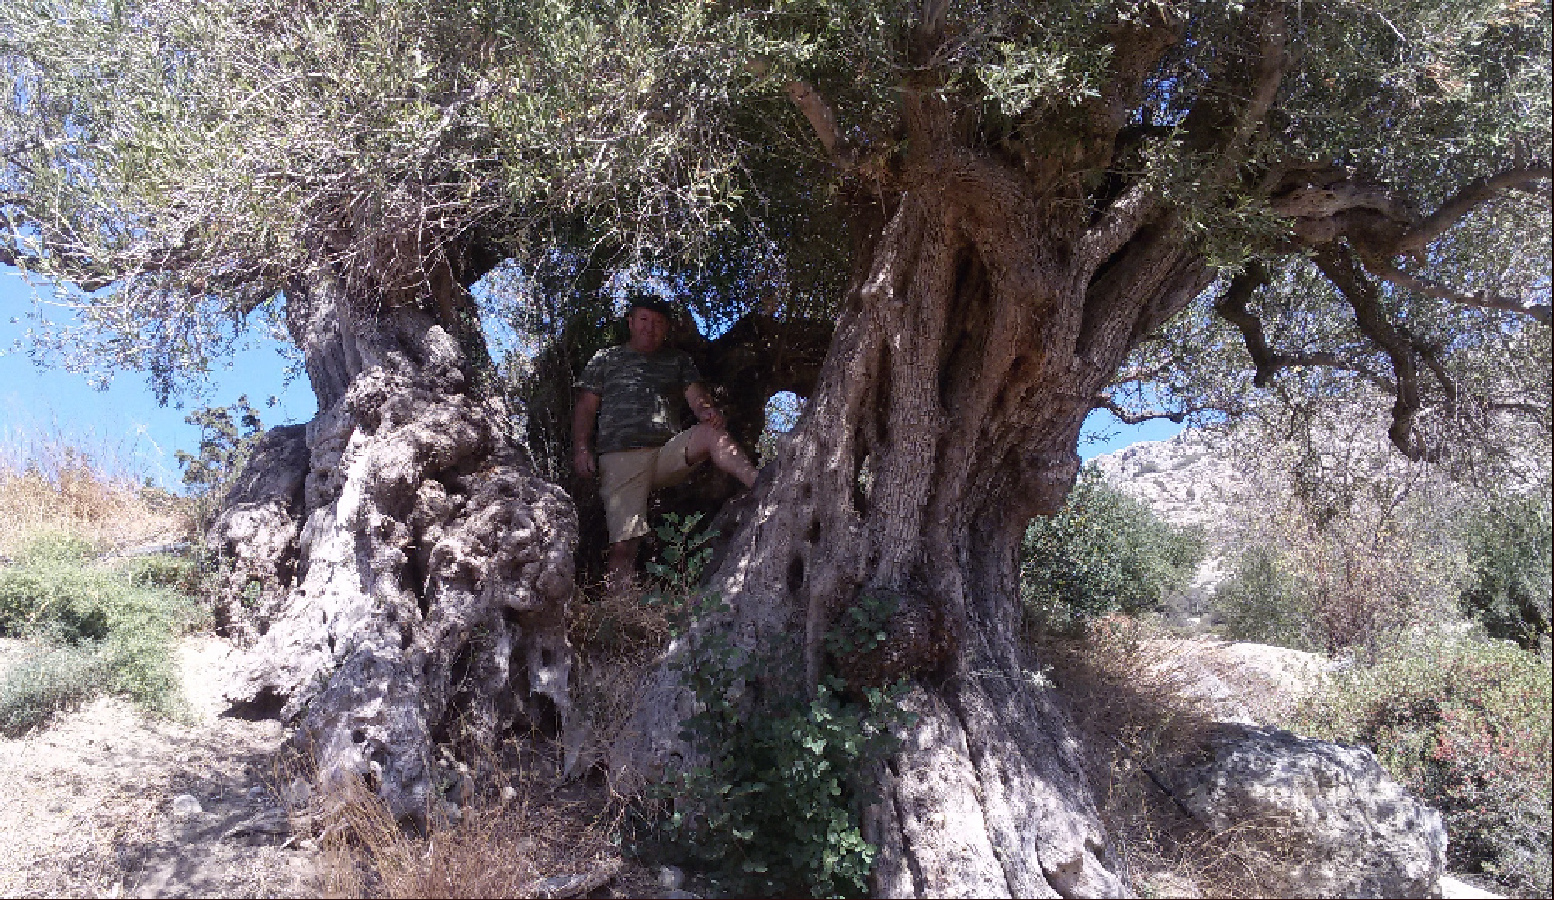 A man on an olive tree